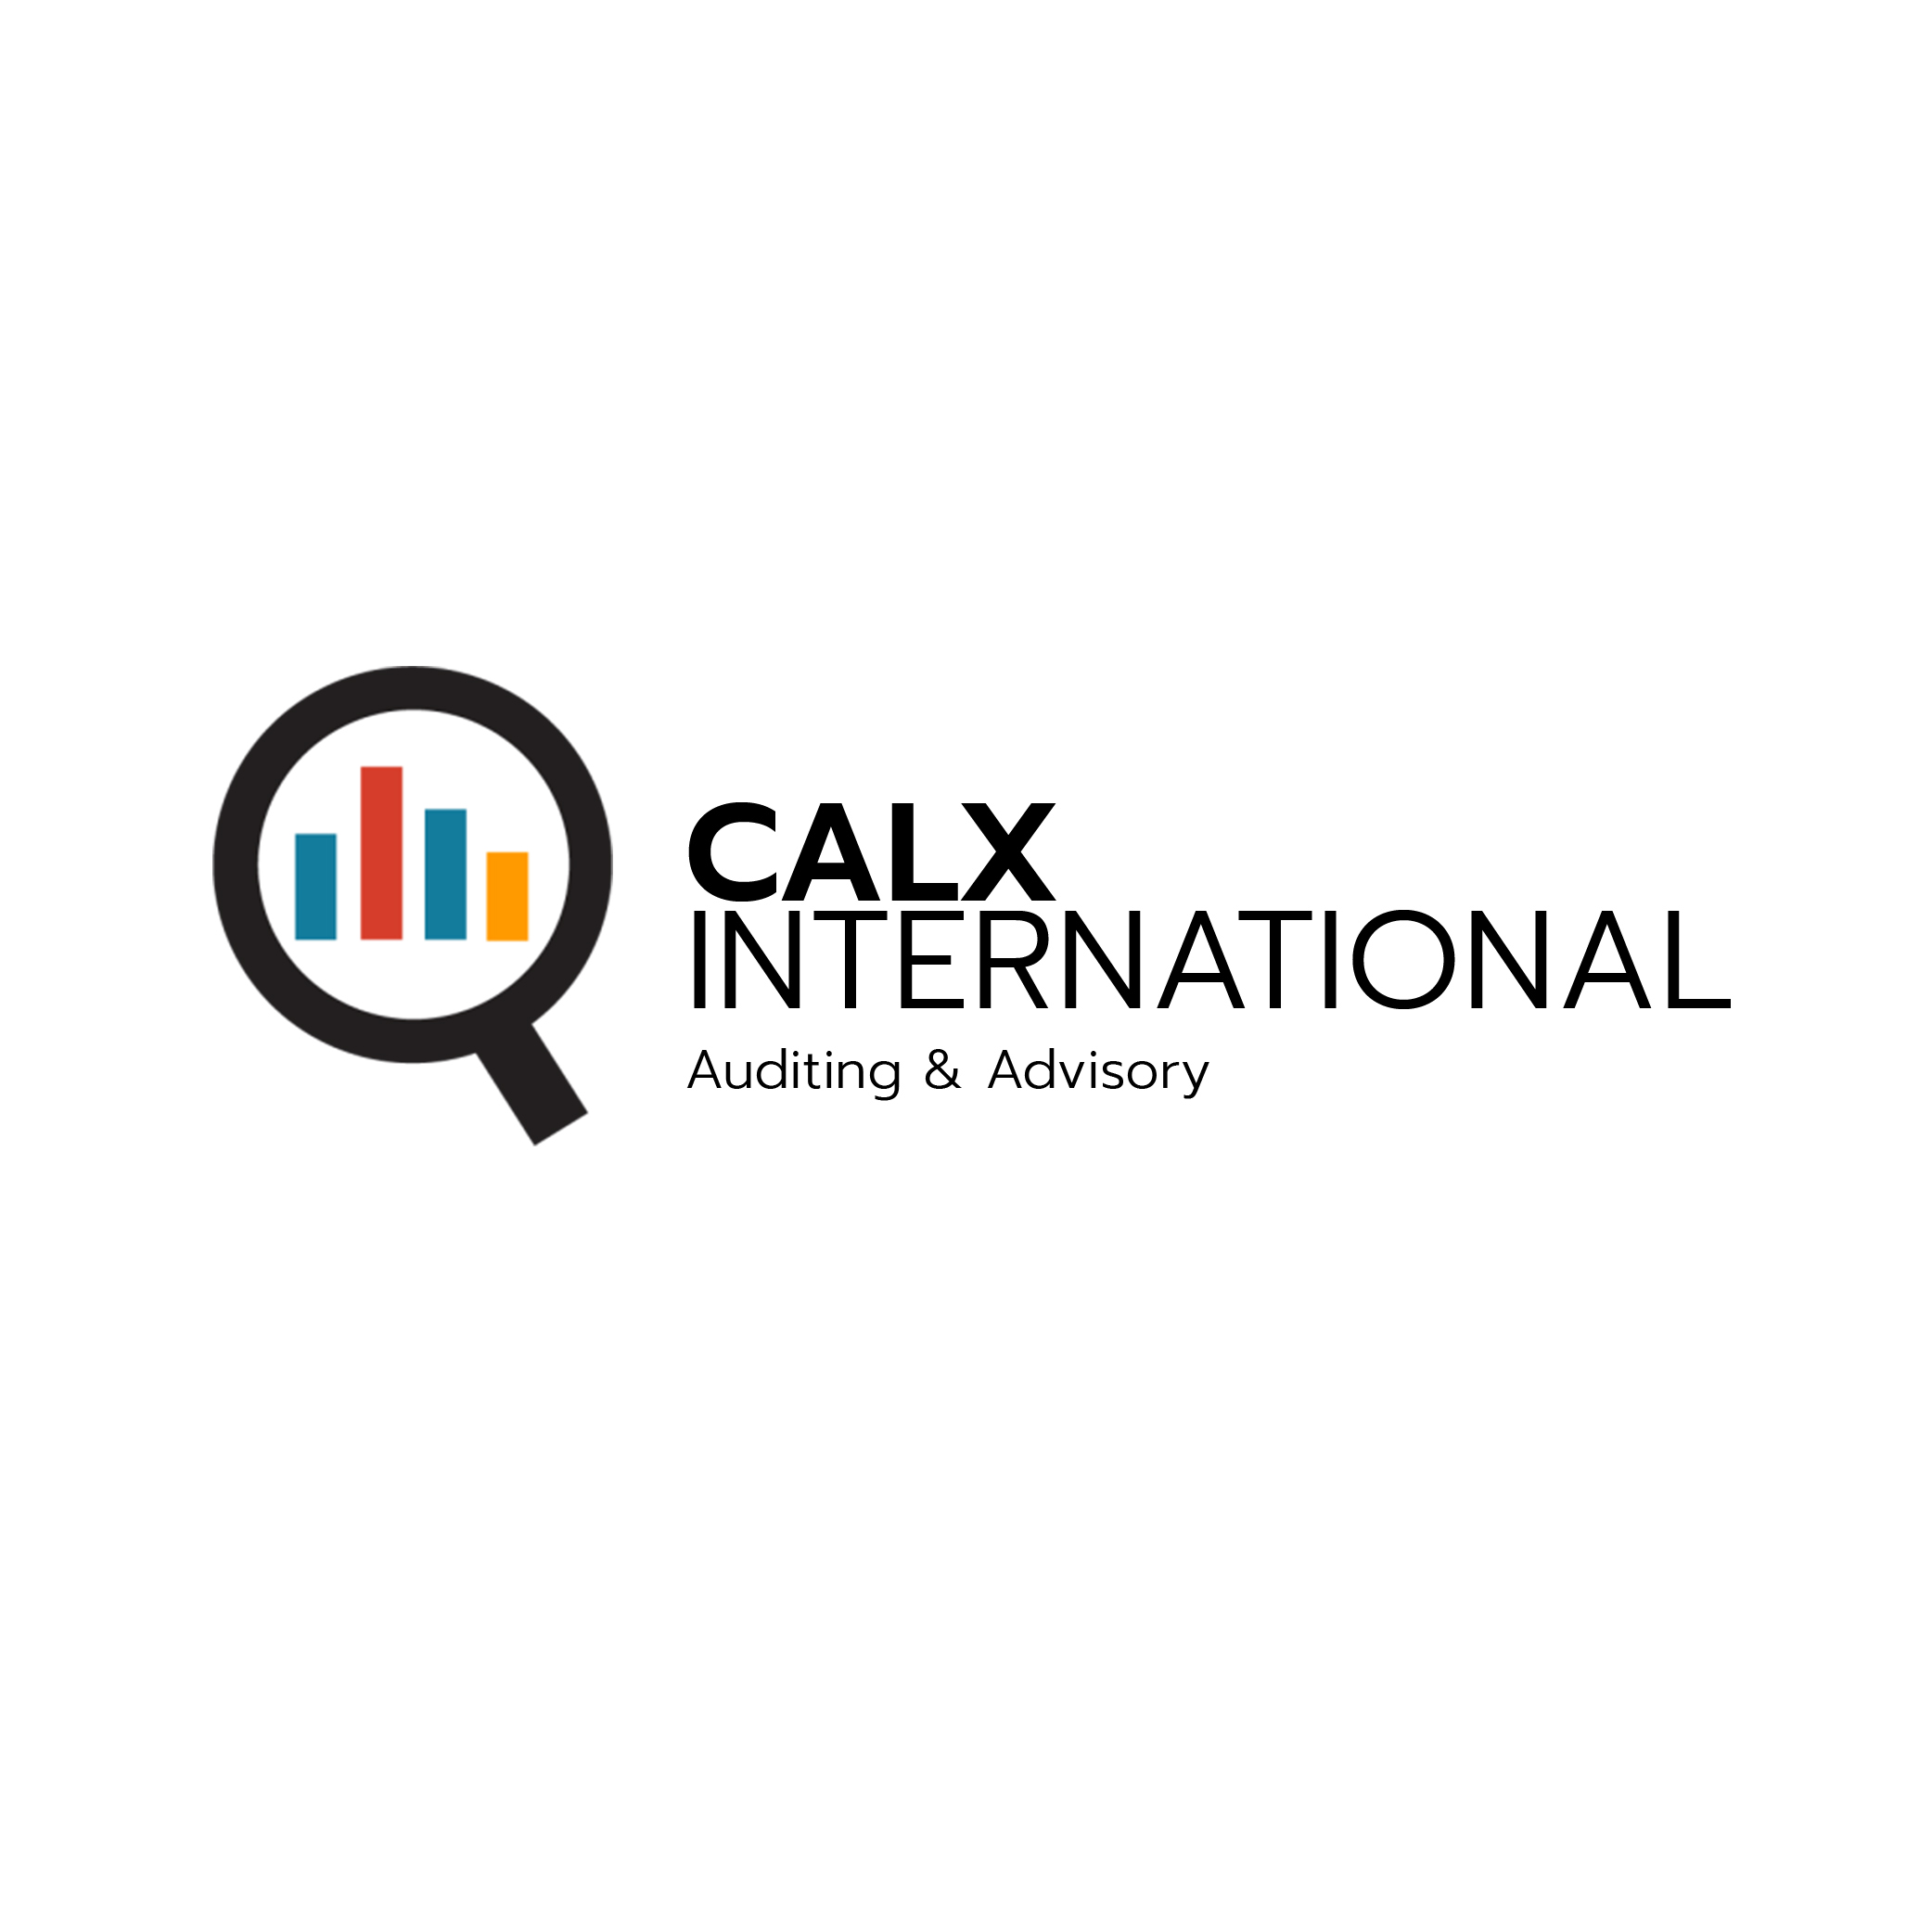 Calx International Auditing